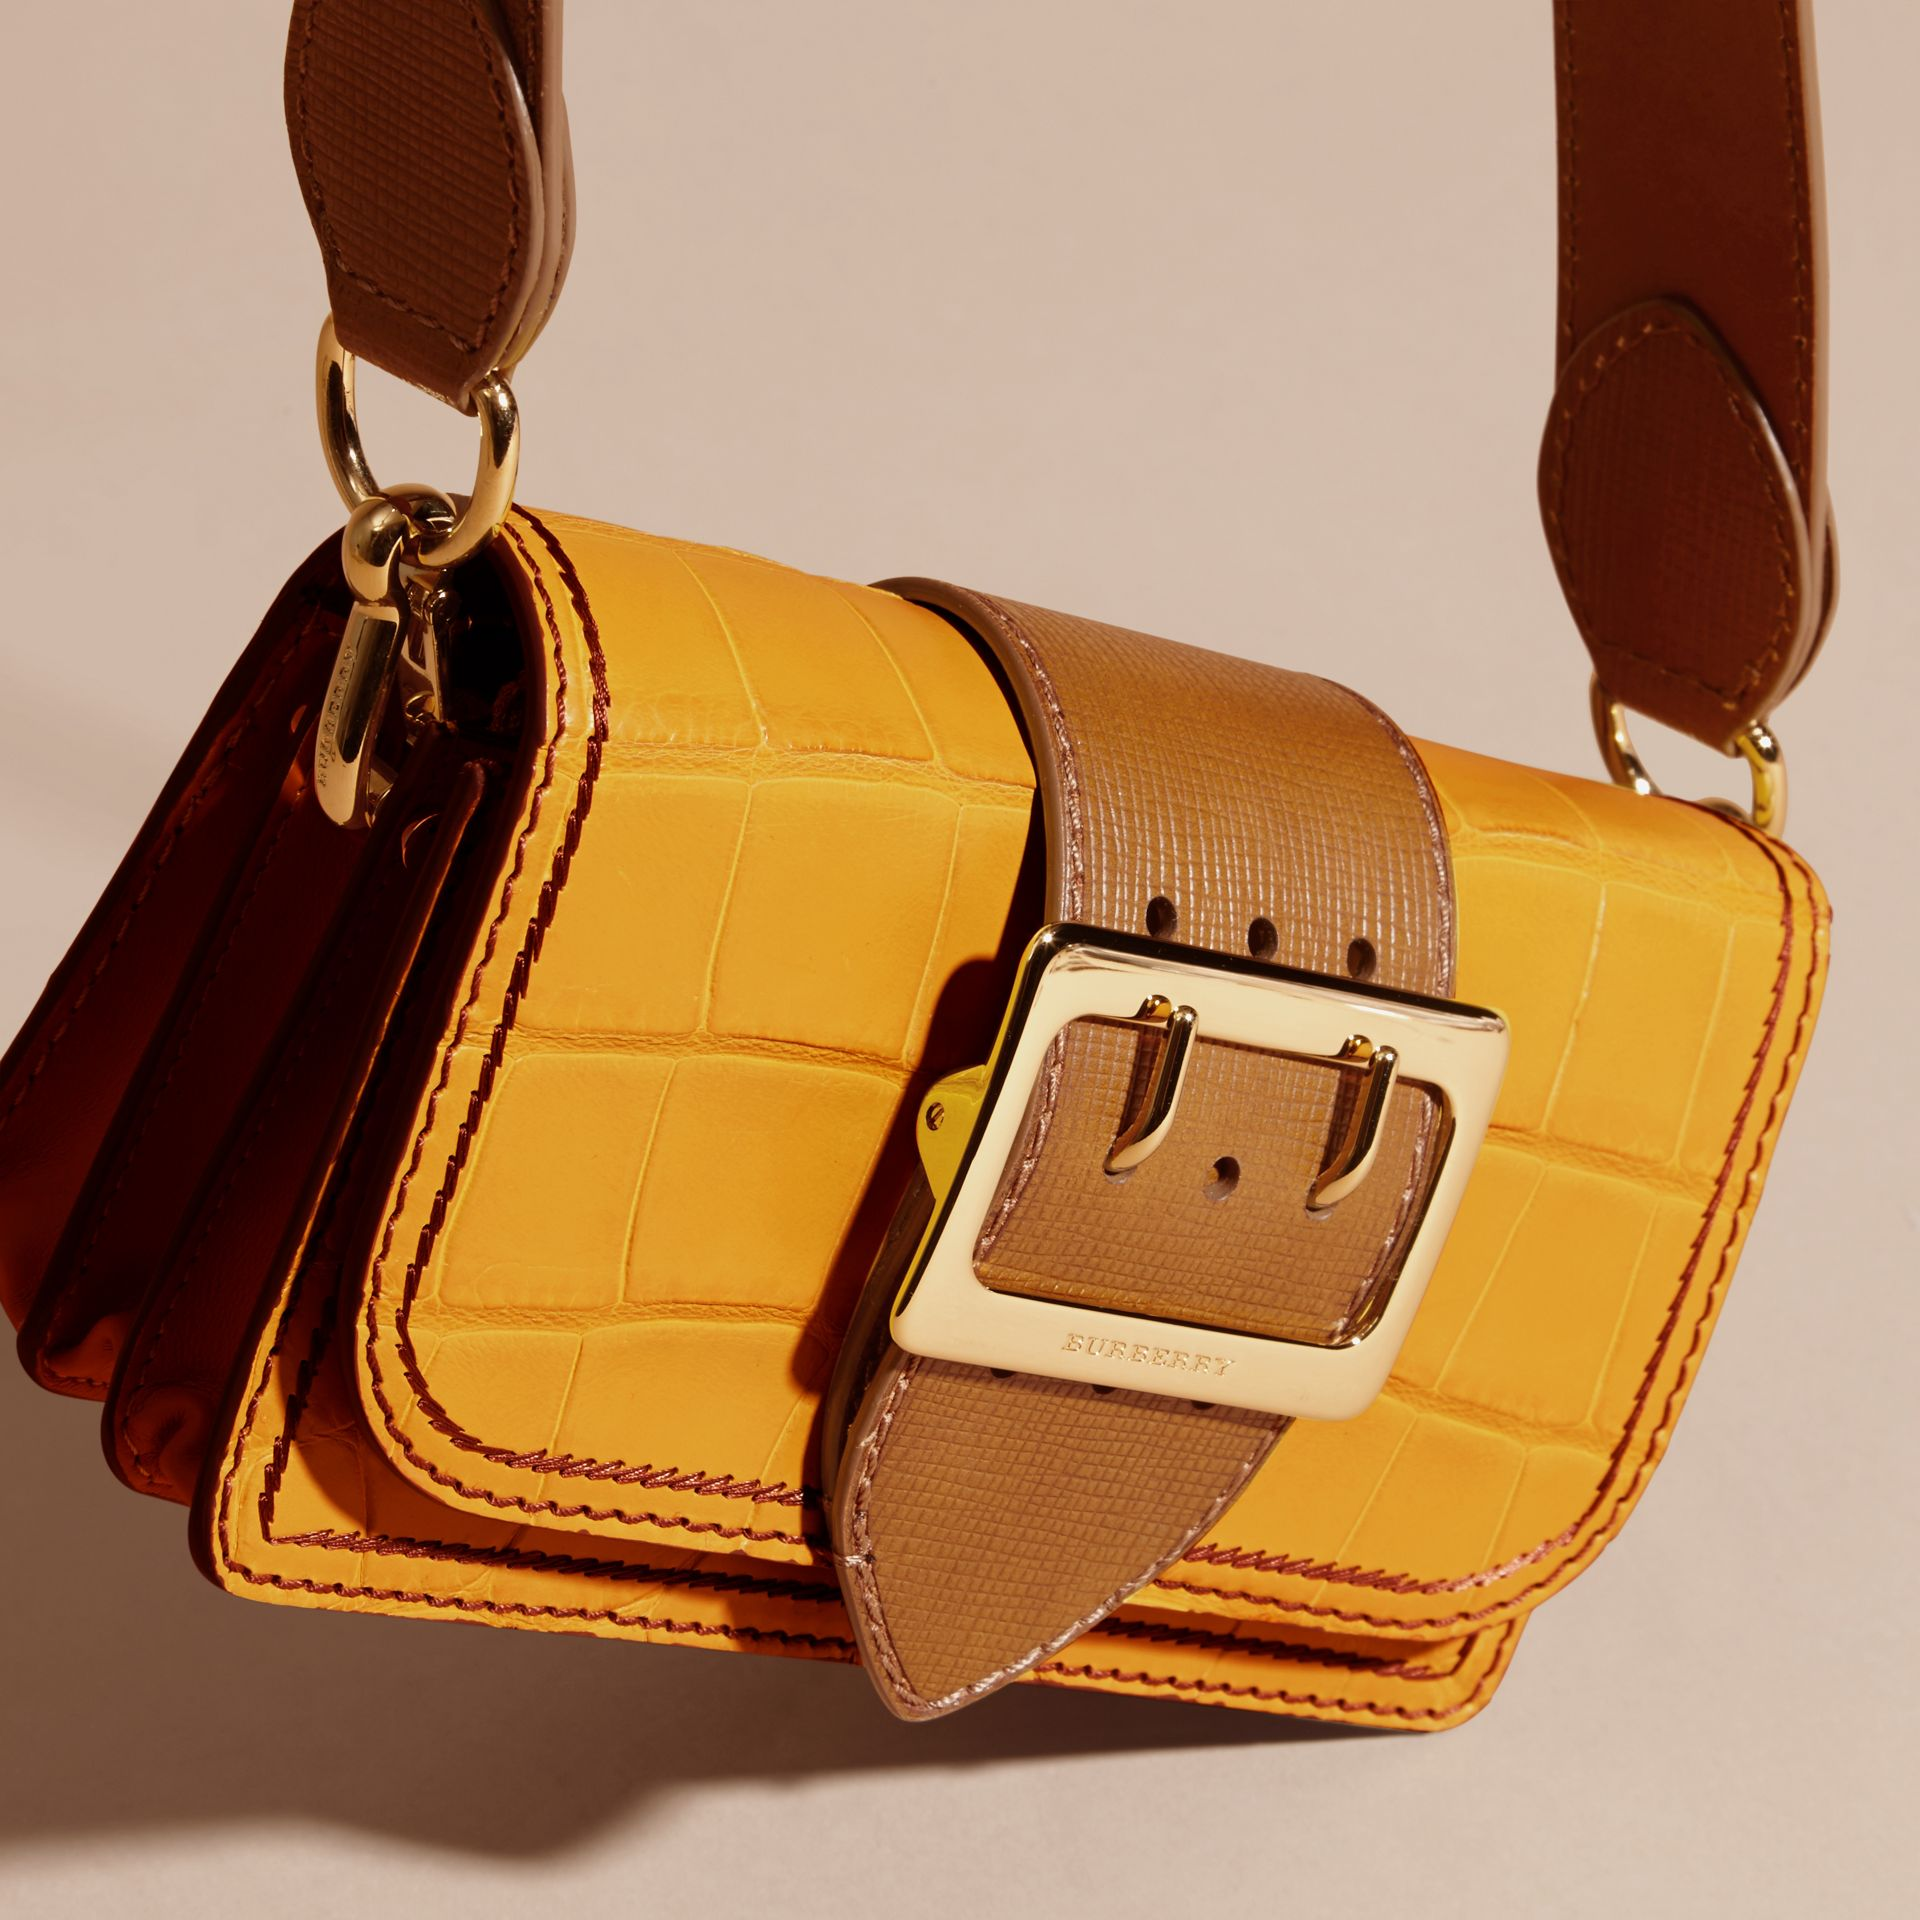 The Small Buckle Bag in Alligator and Leather in Citrus Yellow / Tan - Women | Burberry - gallery image 7